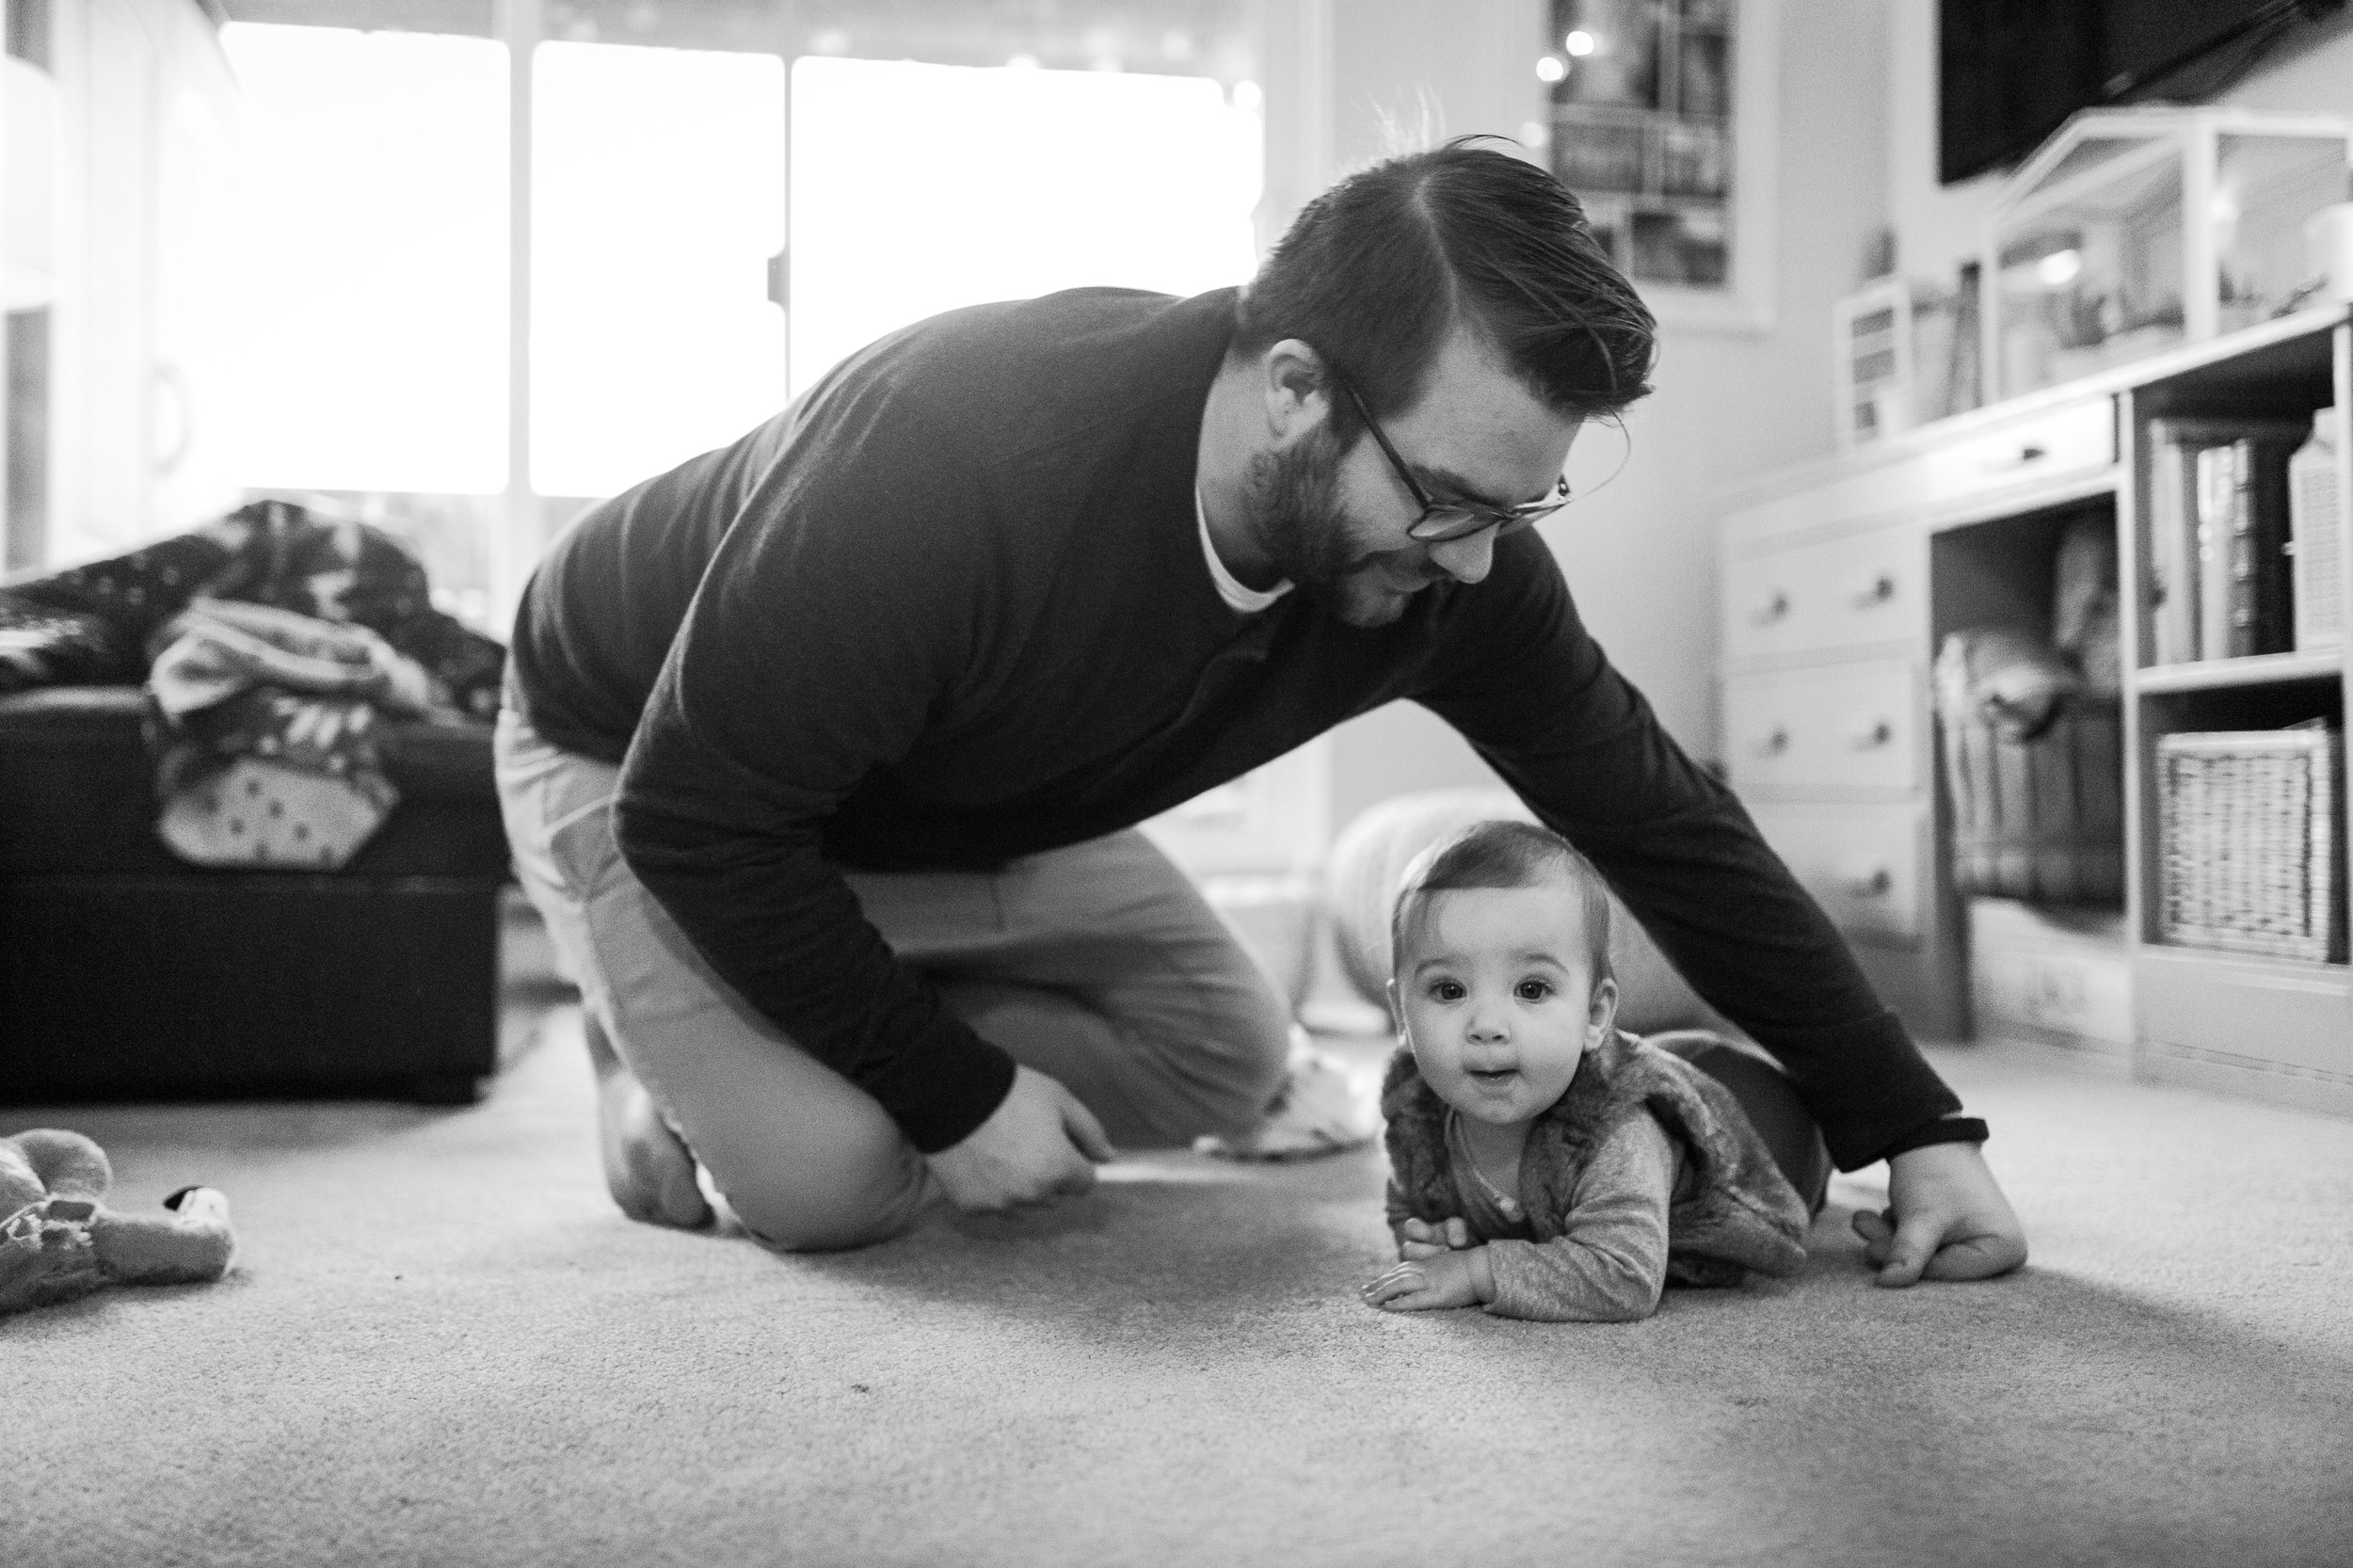 family-film-documentary-dad-baby-playing-floor-toys-vancouver